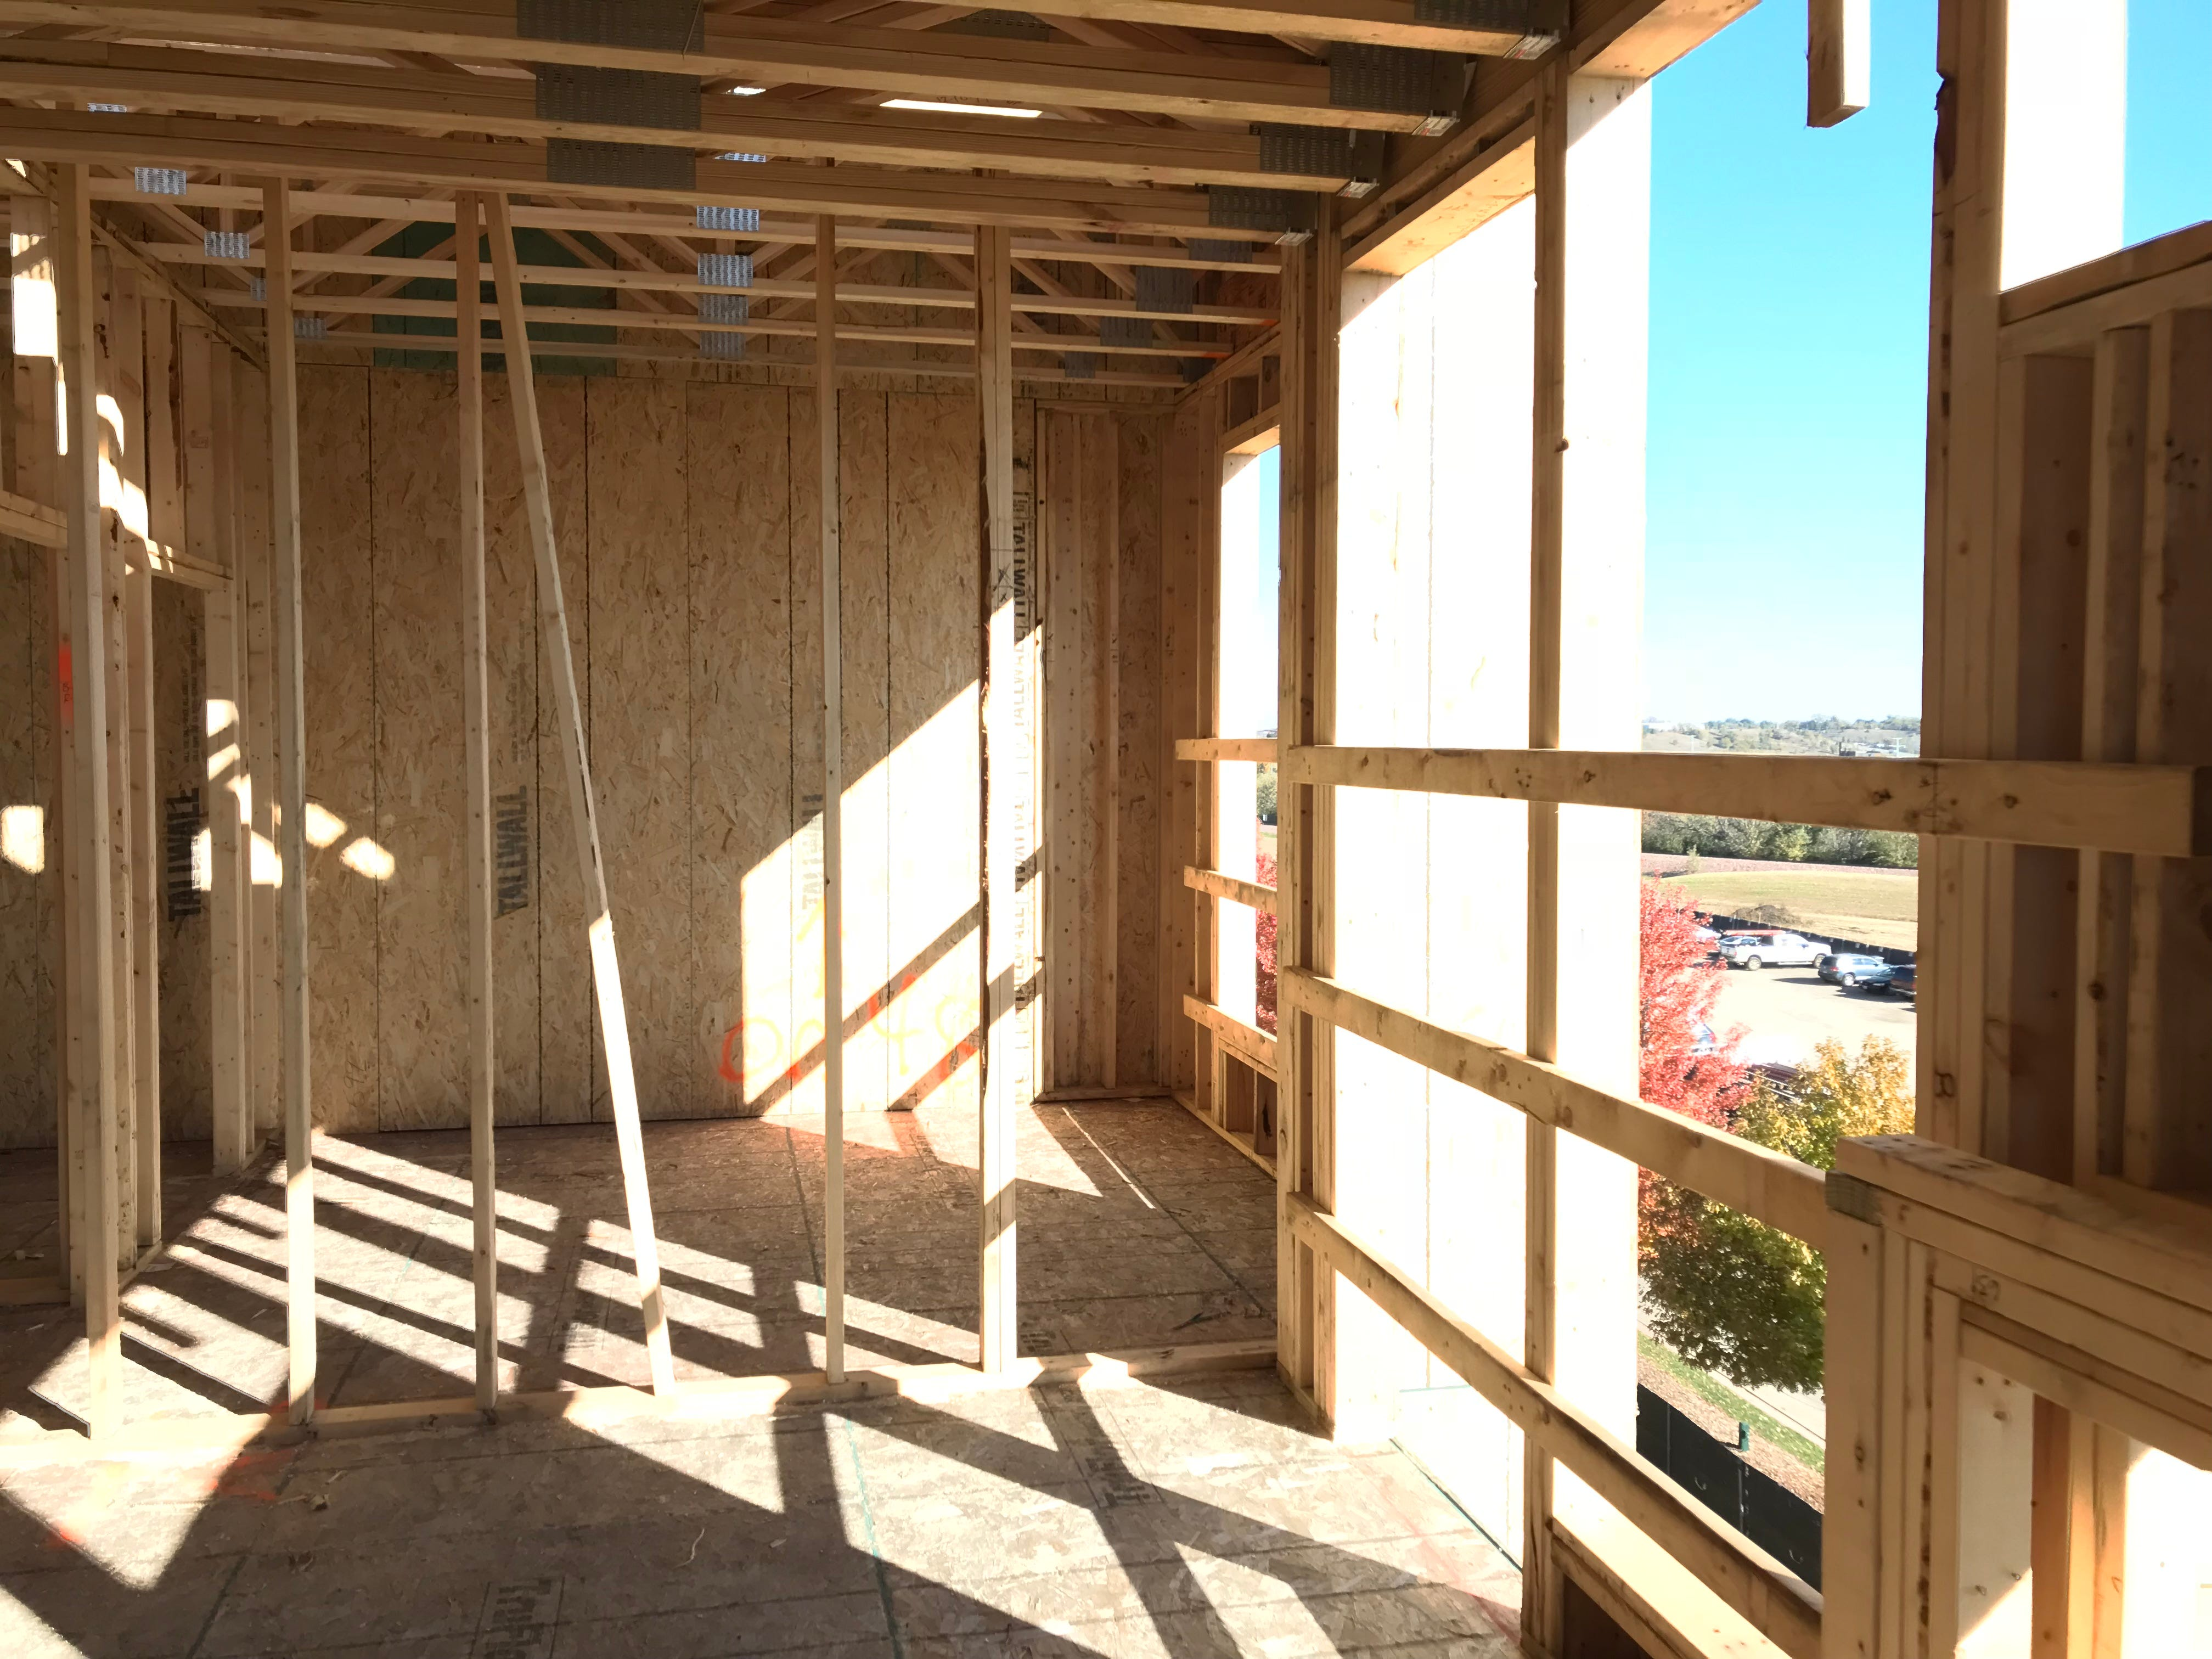 Inside an under-construction apartment in The Cascade at the Falls building in uptown Sioux Falls.